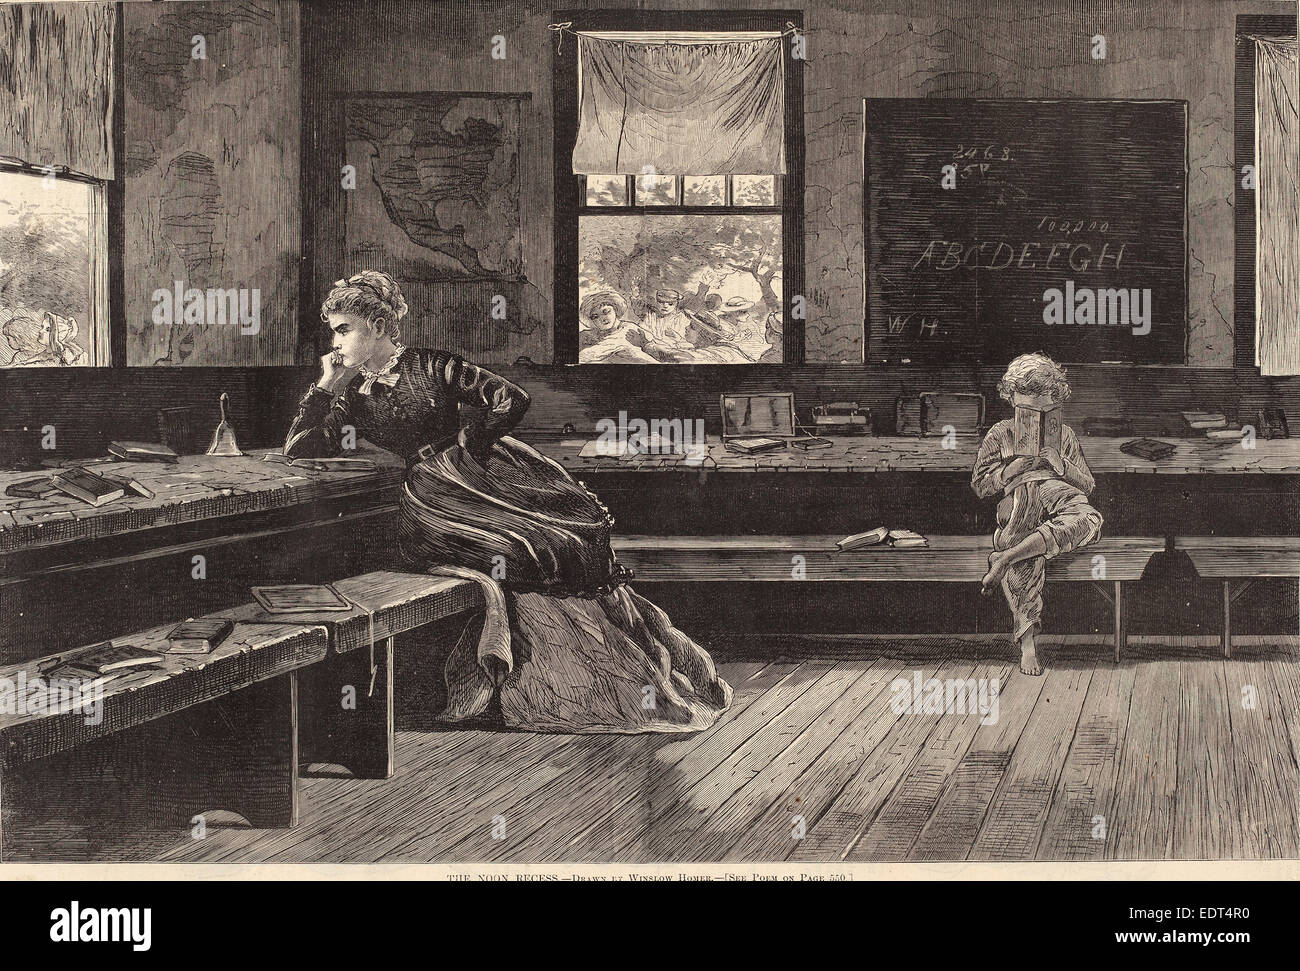 after Winslow Homer, The Noon Recess, published 1873, wood engraving on newsprint - Stock Image